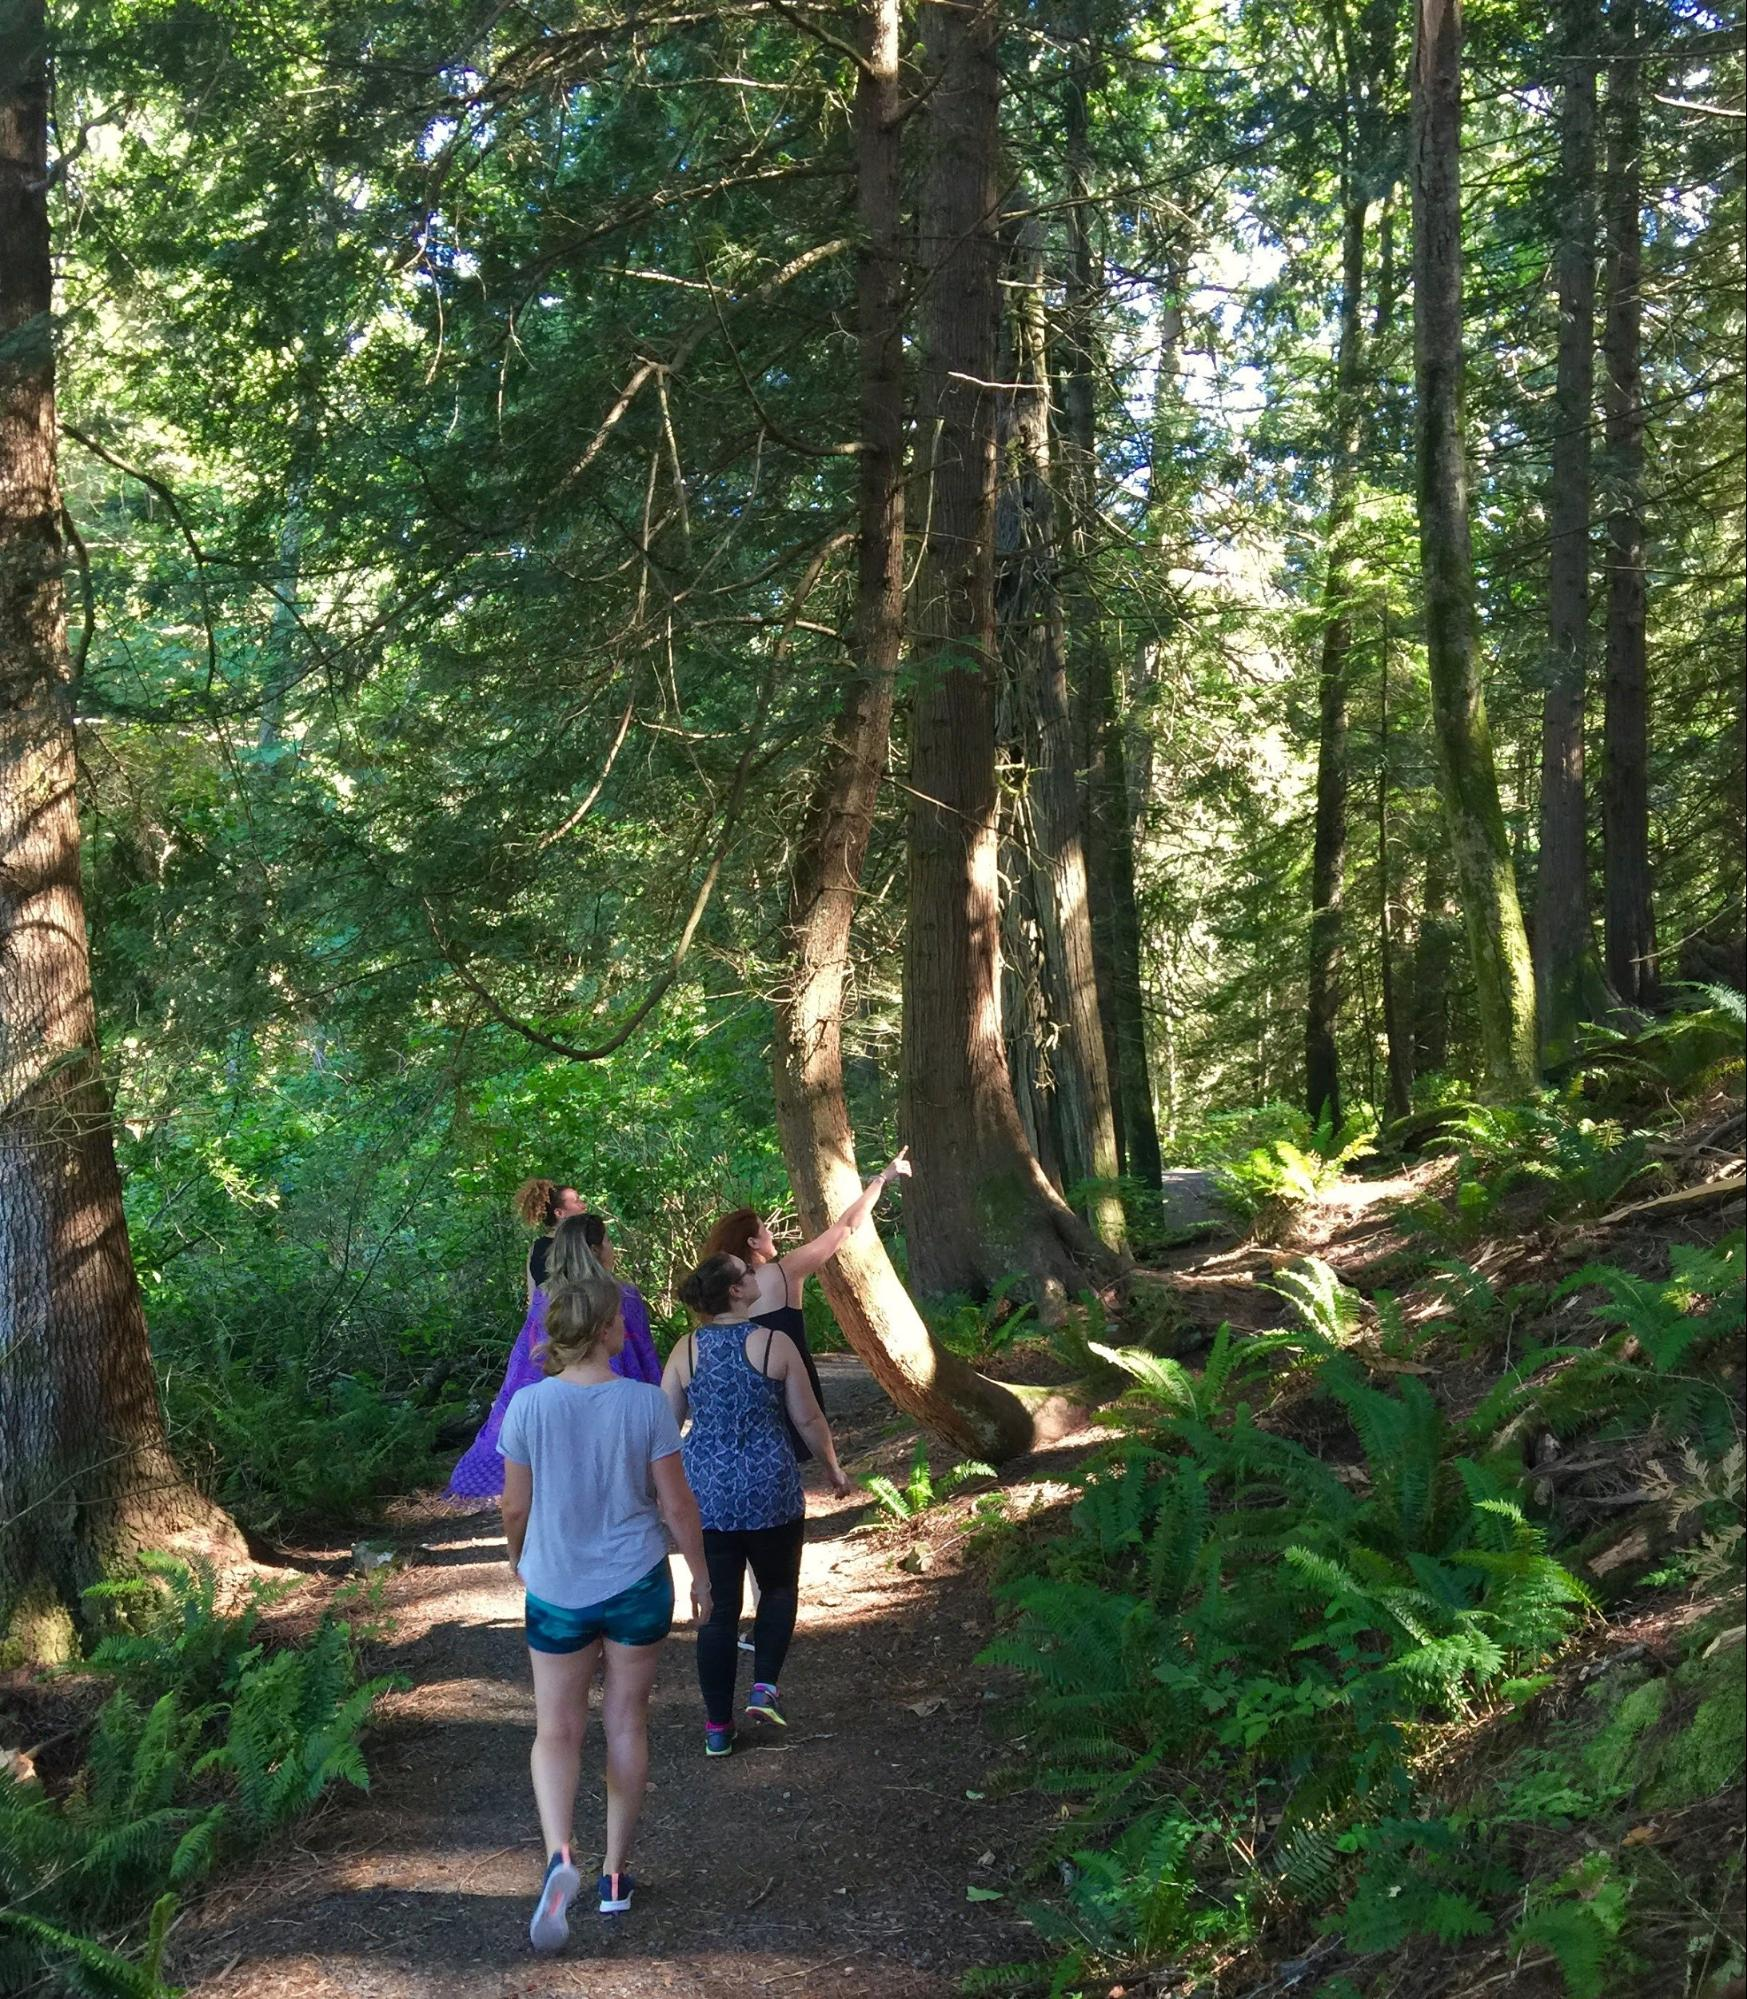 A group of hikers on a path lined with mature trees.